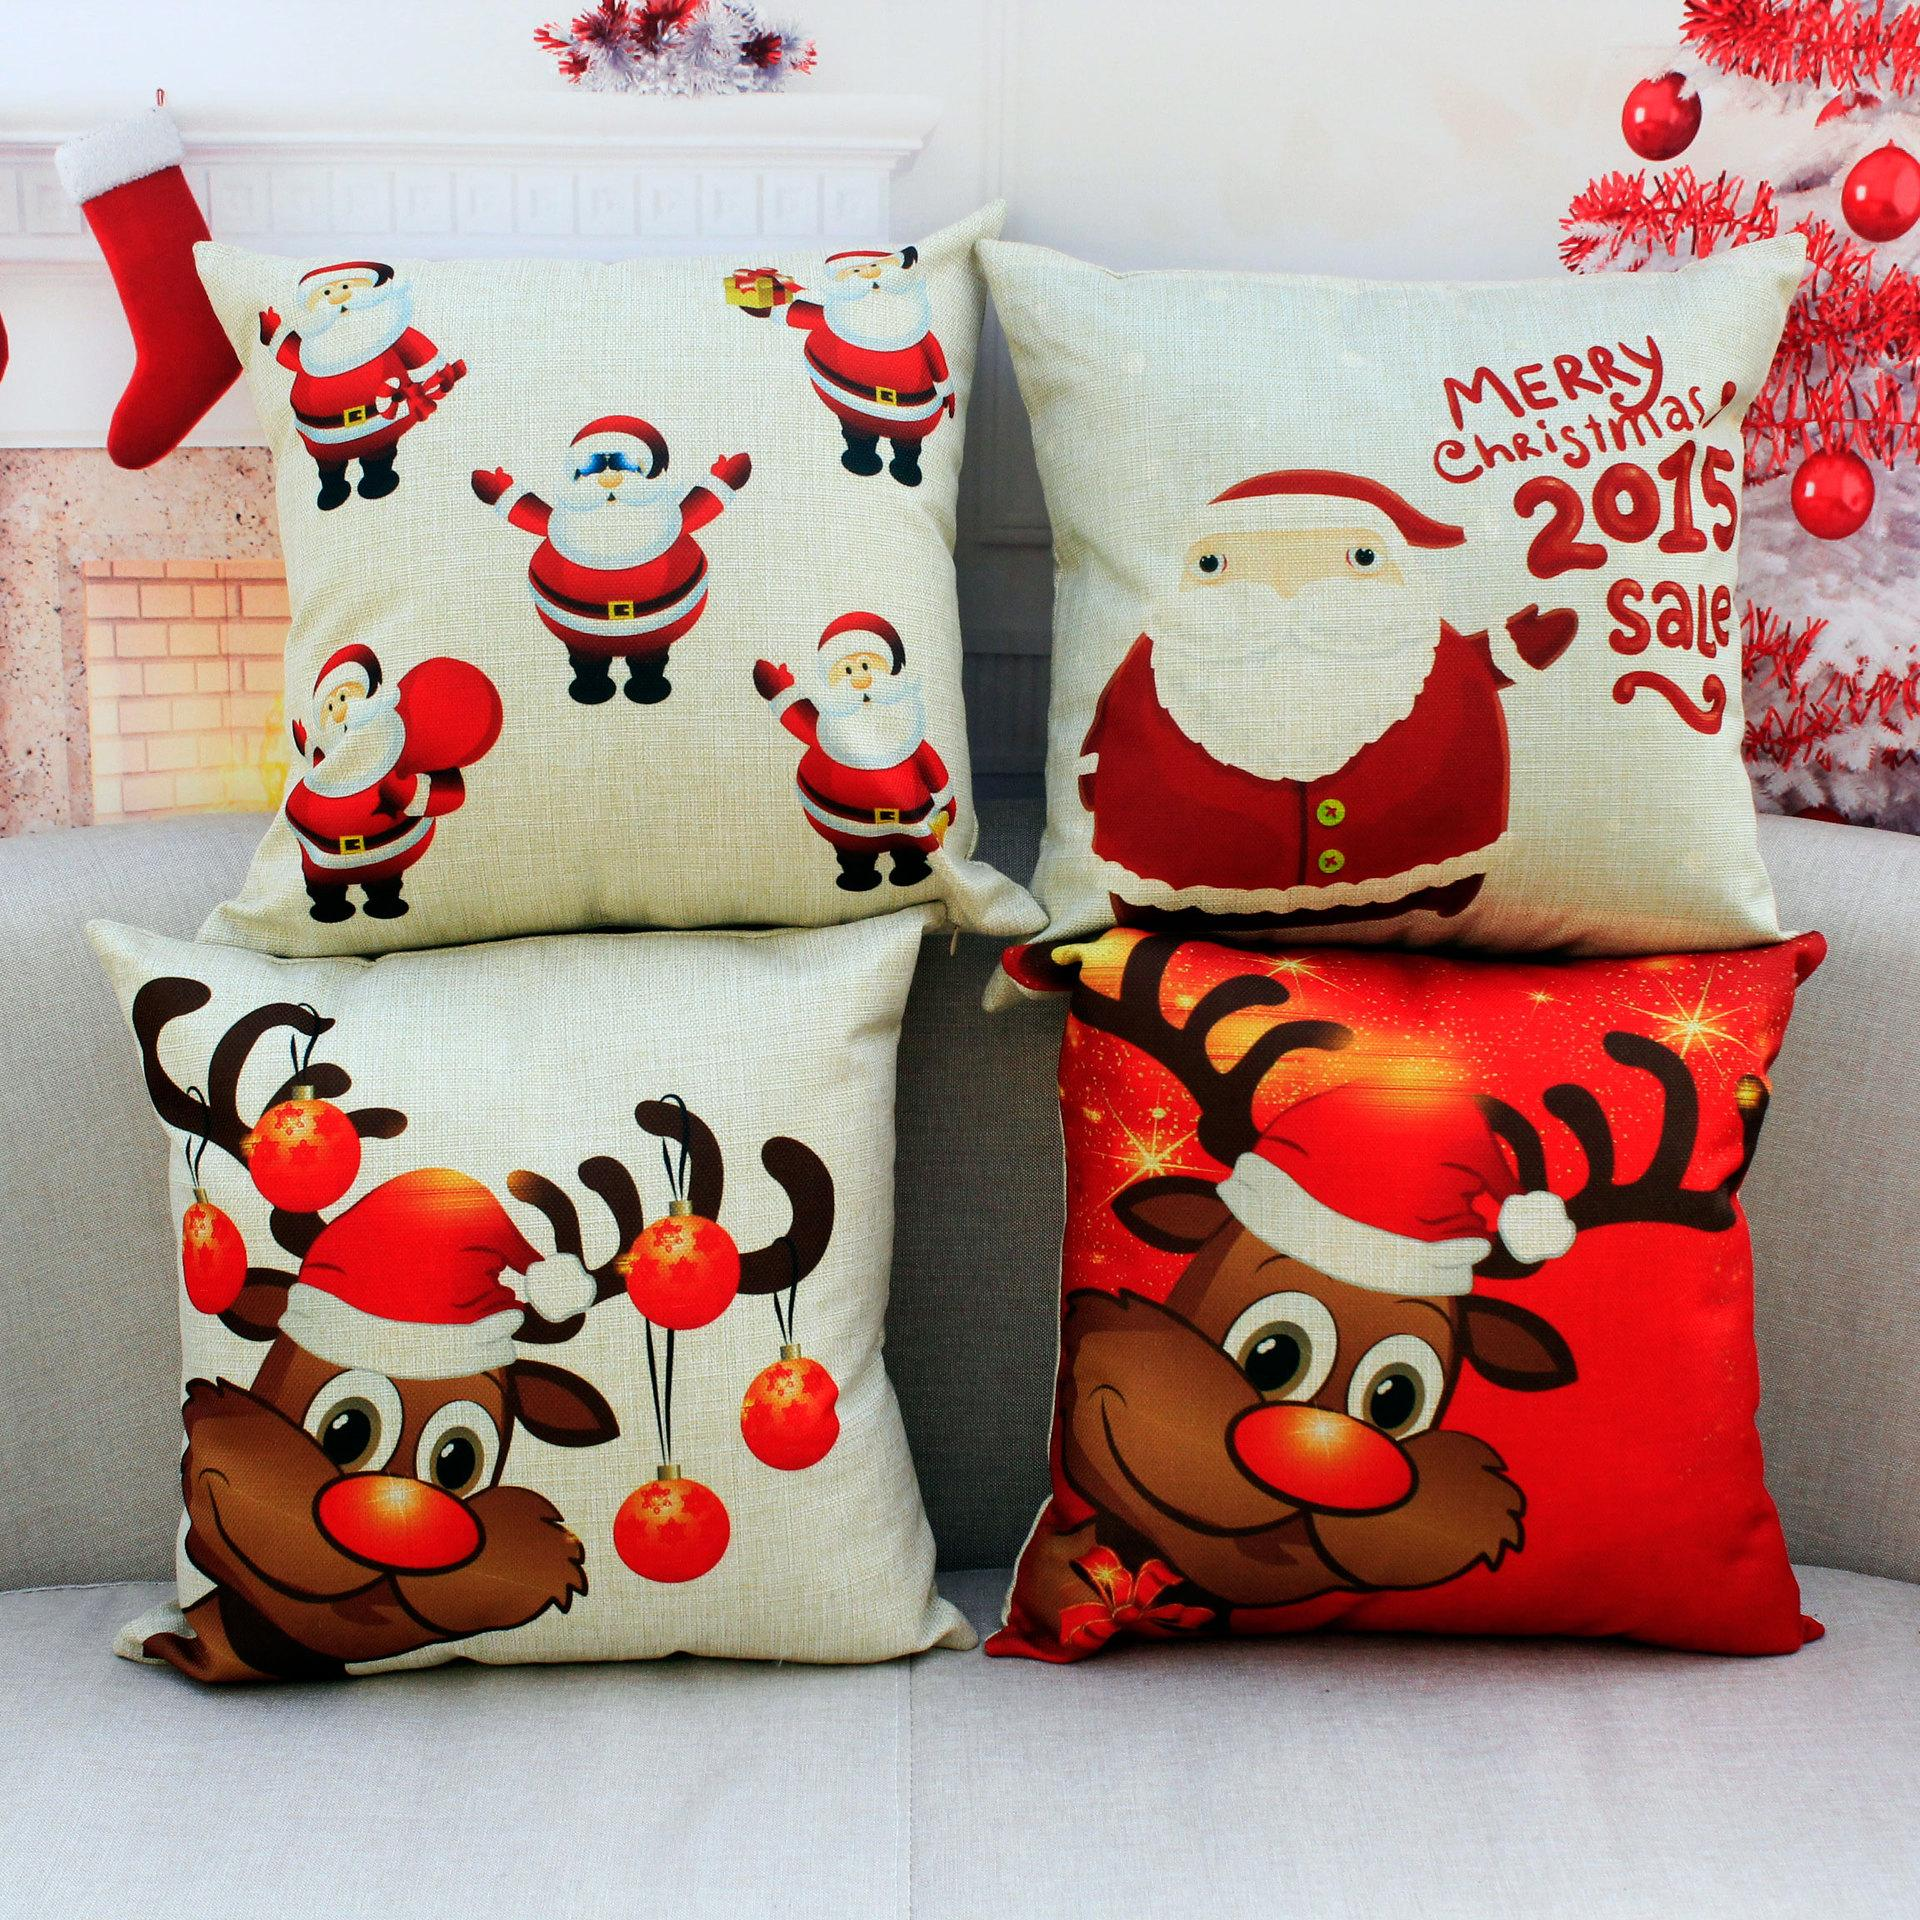 10x Christmas Throw Pillows Covers Merry Christmas Gifts To Every Home  Cotton Linen Throw Pillow Case Cushion Covers Home Sofa Decorative 18  Disposable ...